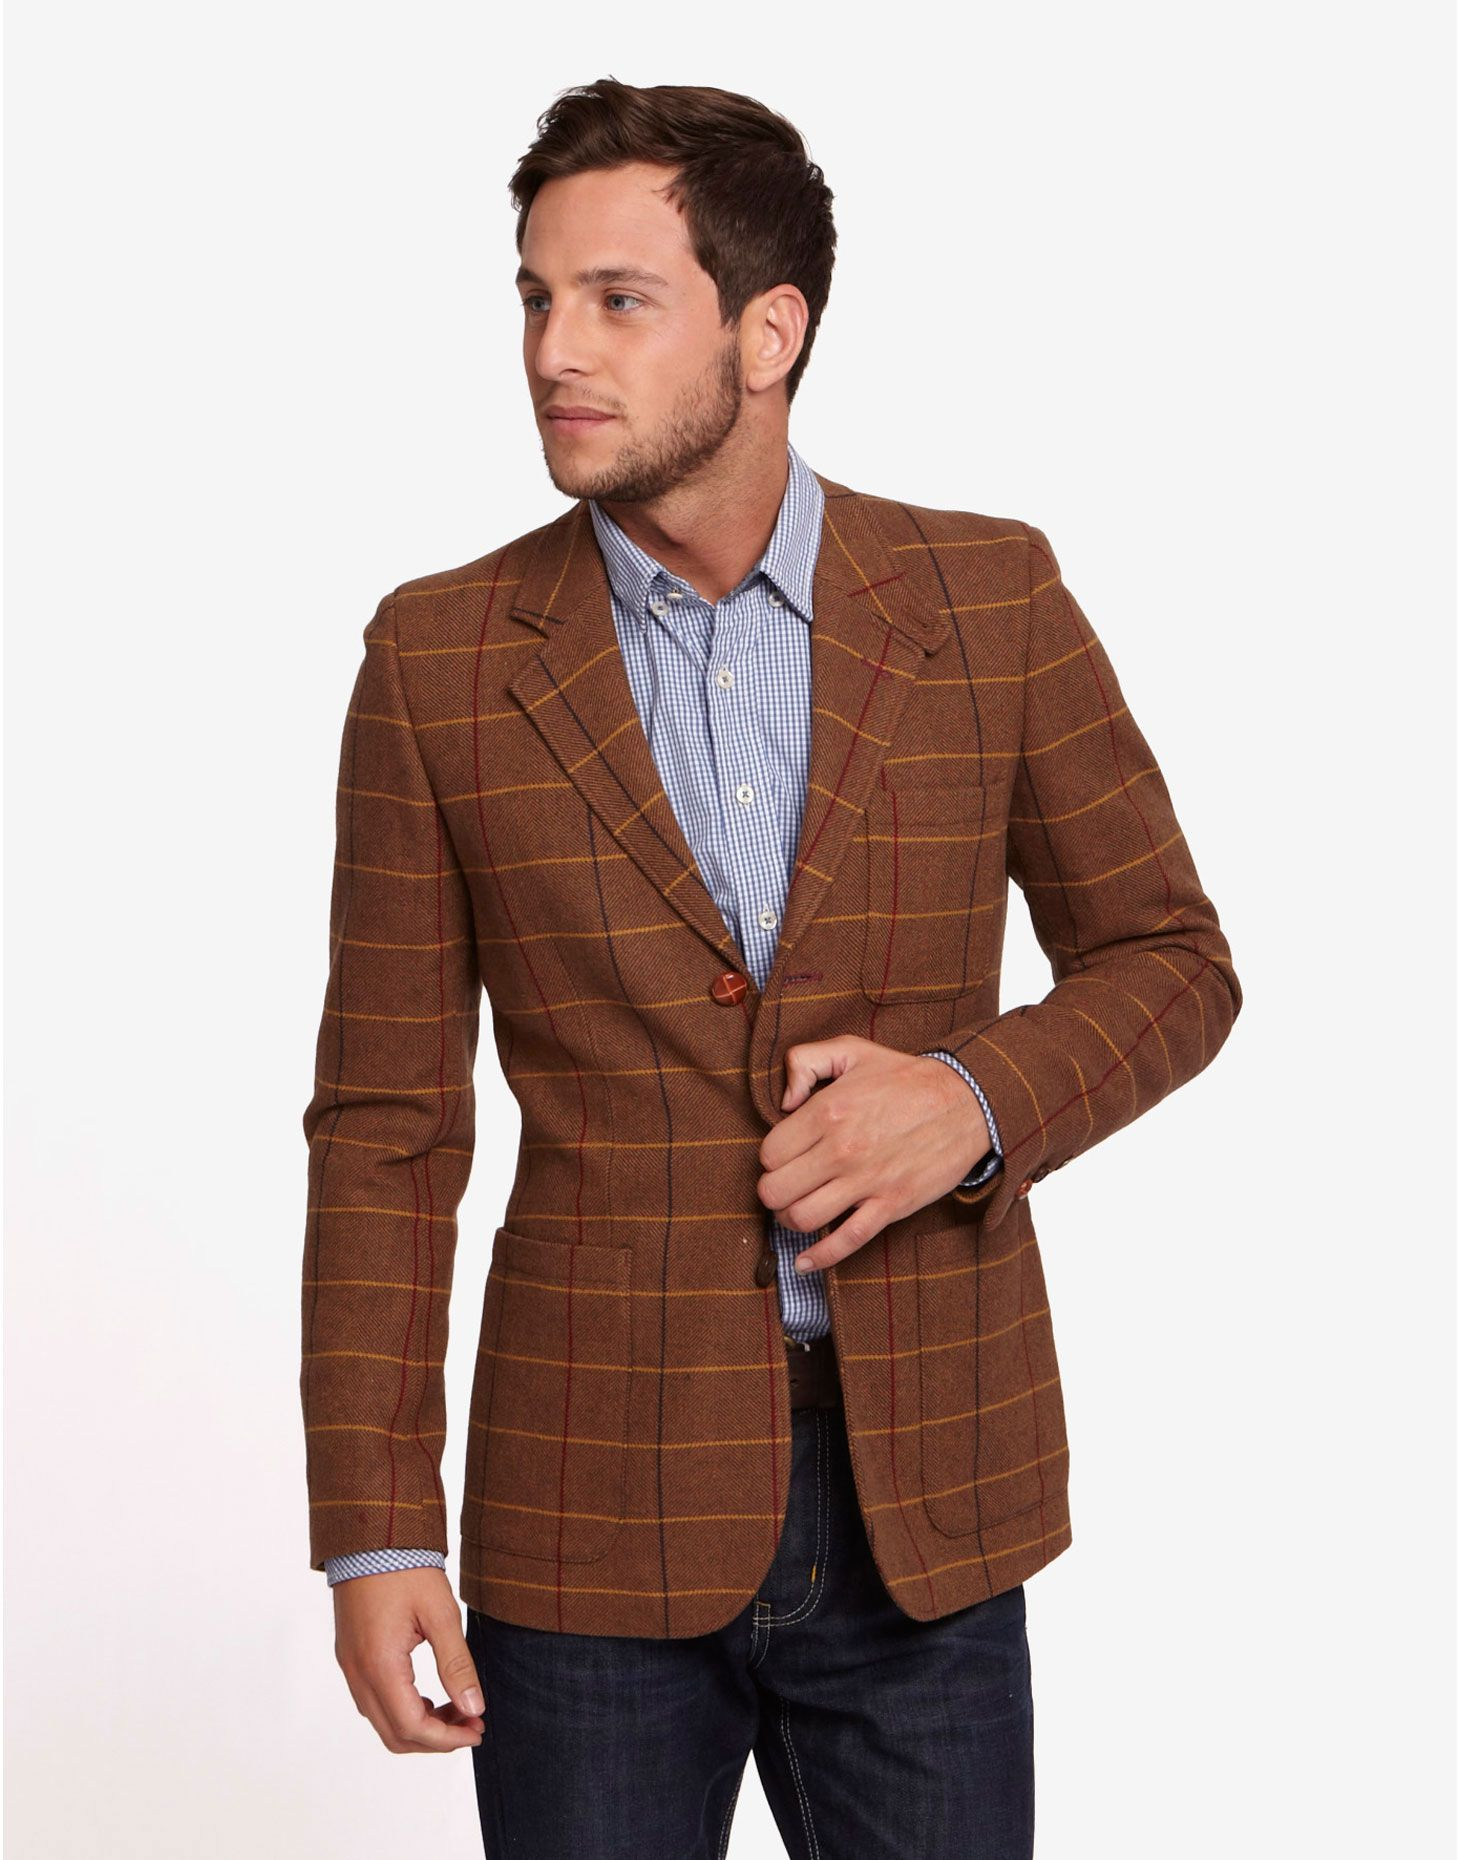 LYNWOOD Mens Tweed Jacket | GRANT STYLE | Pinterest | Tweed ...